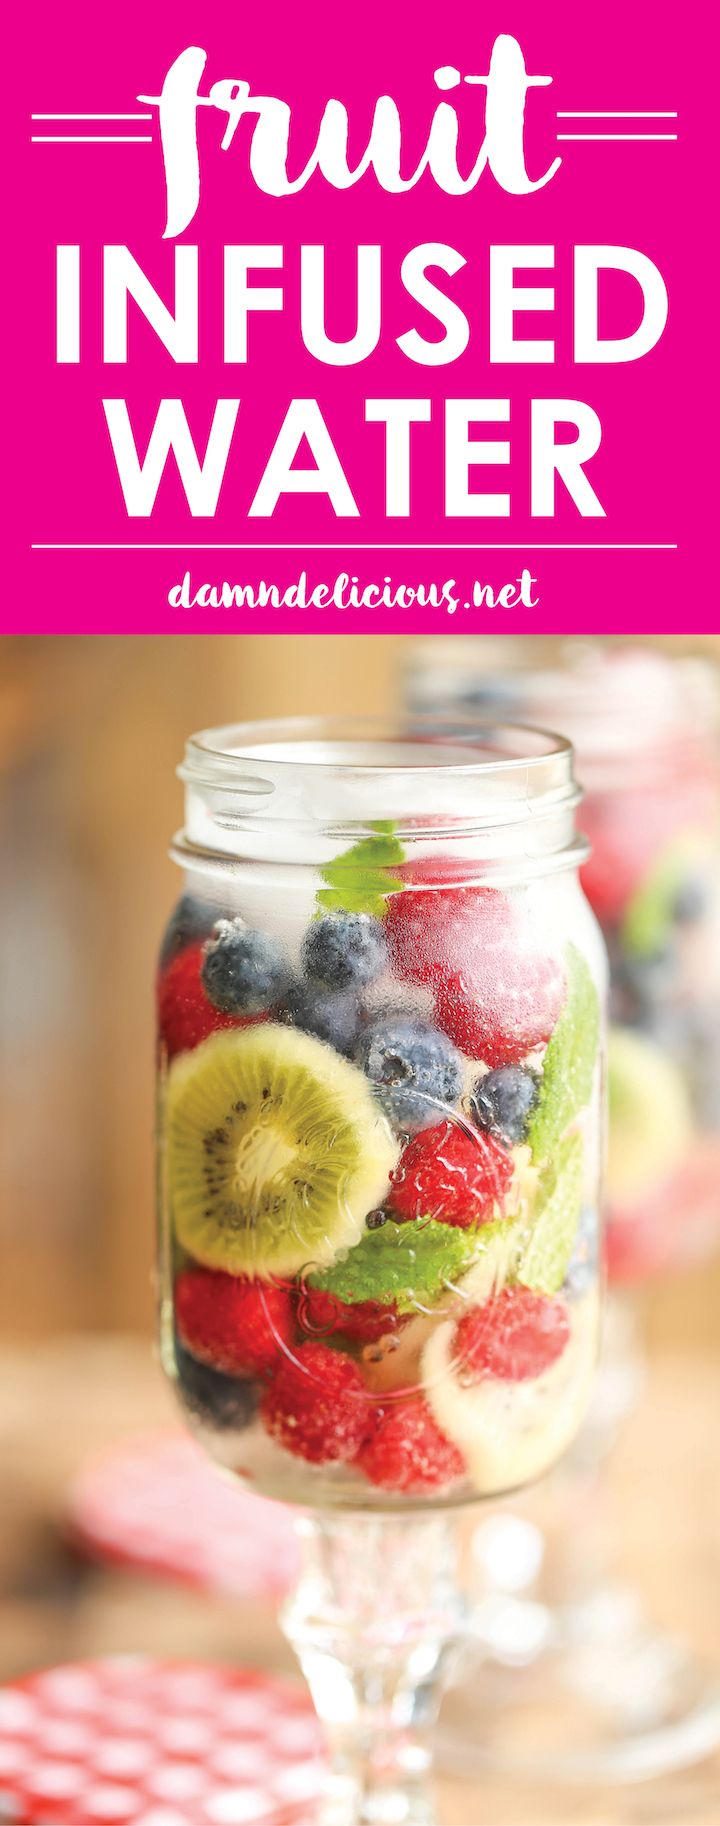 Fruit Infused Water - Skip the soda and stay healthy and hydrated with this refreshing fruit combination! It literally takes 5 minutes to put together.